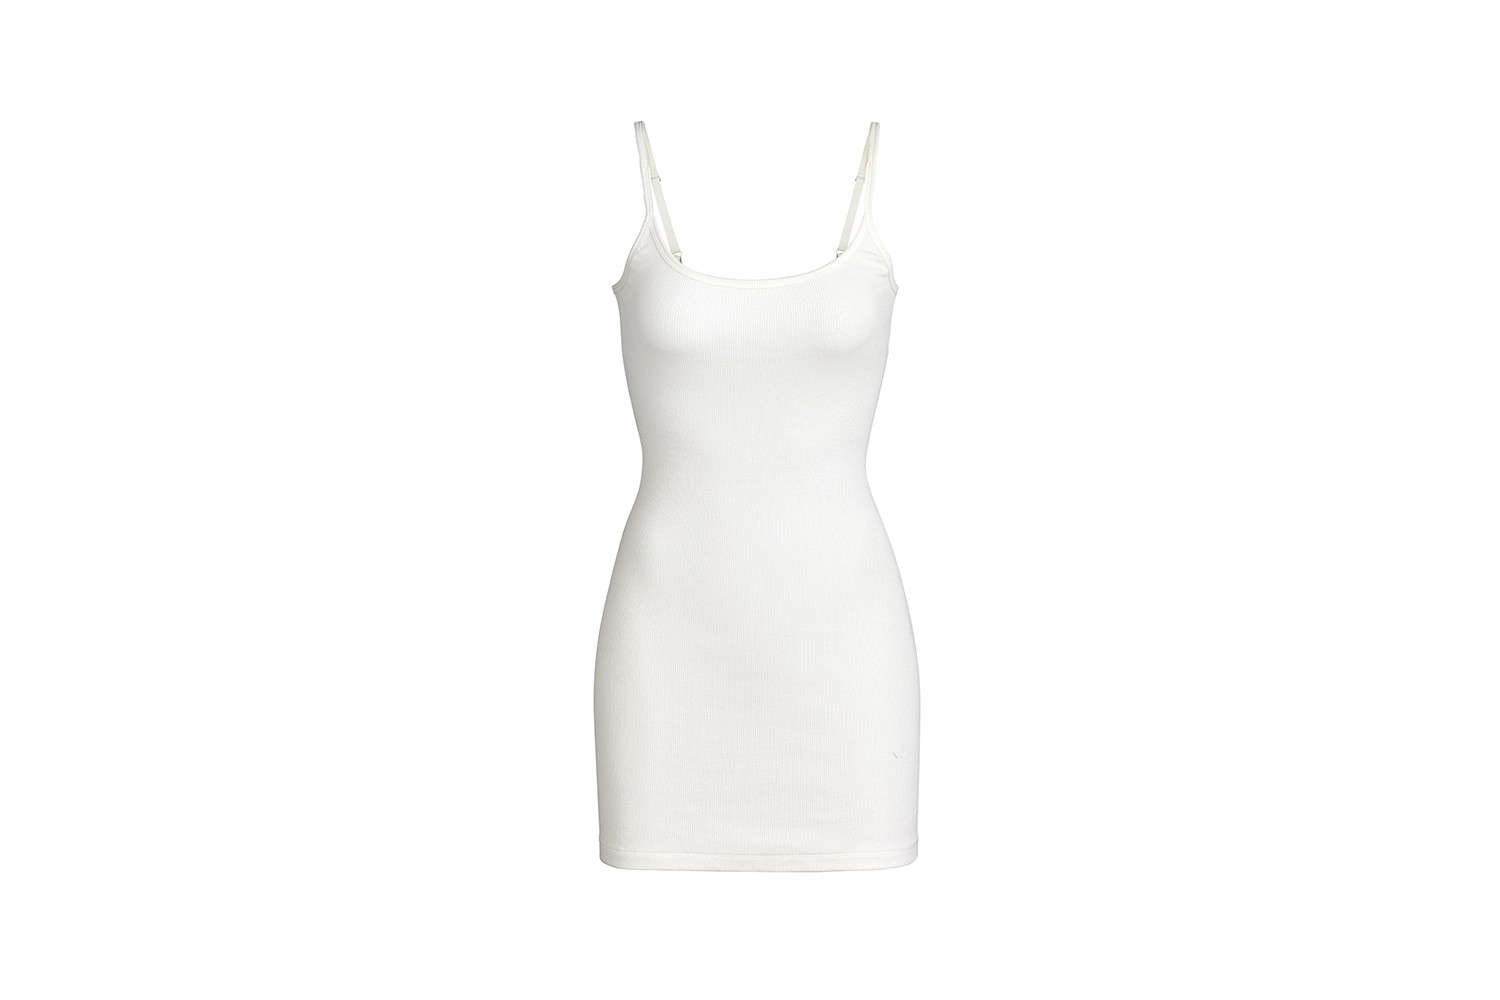 kim kardashian skims shapewear new cotton collection tanks slip dresses thongs